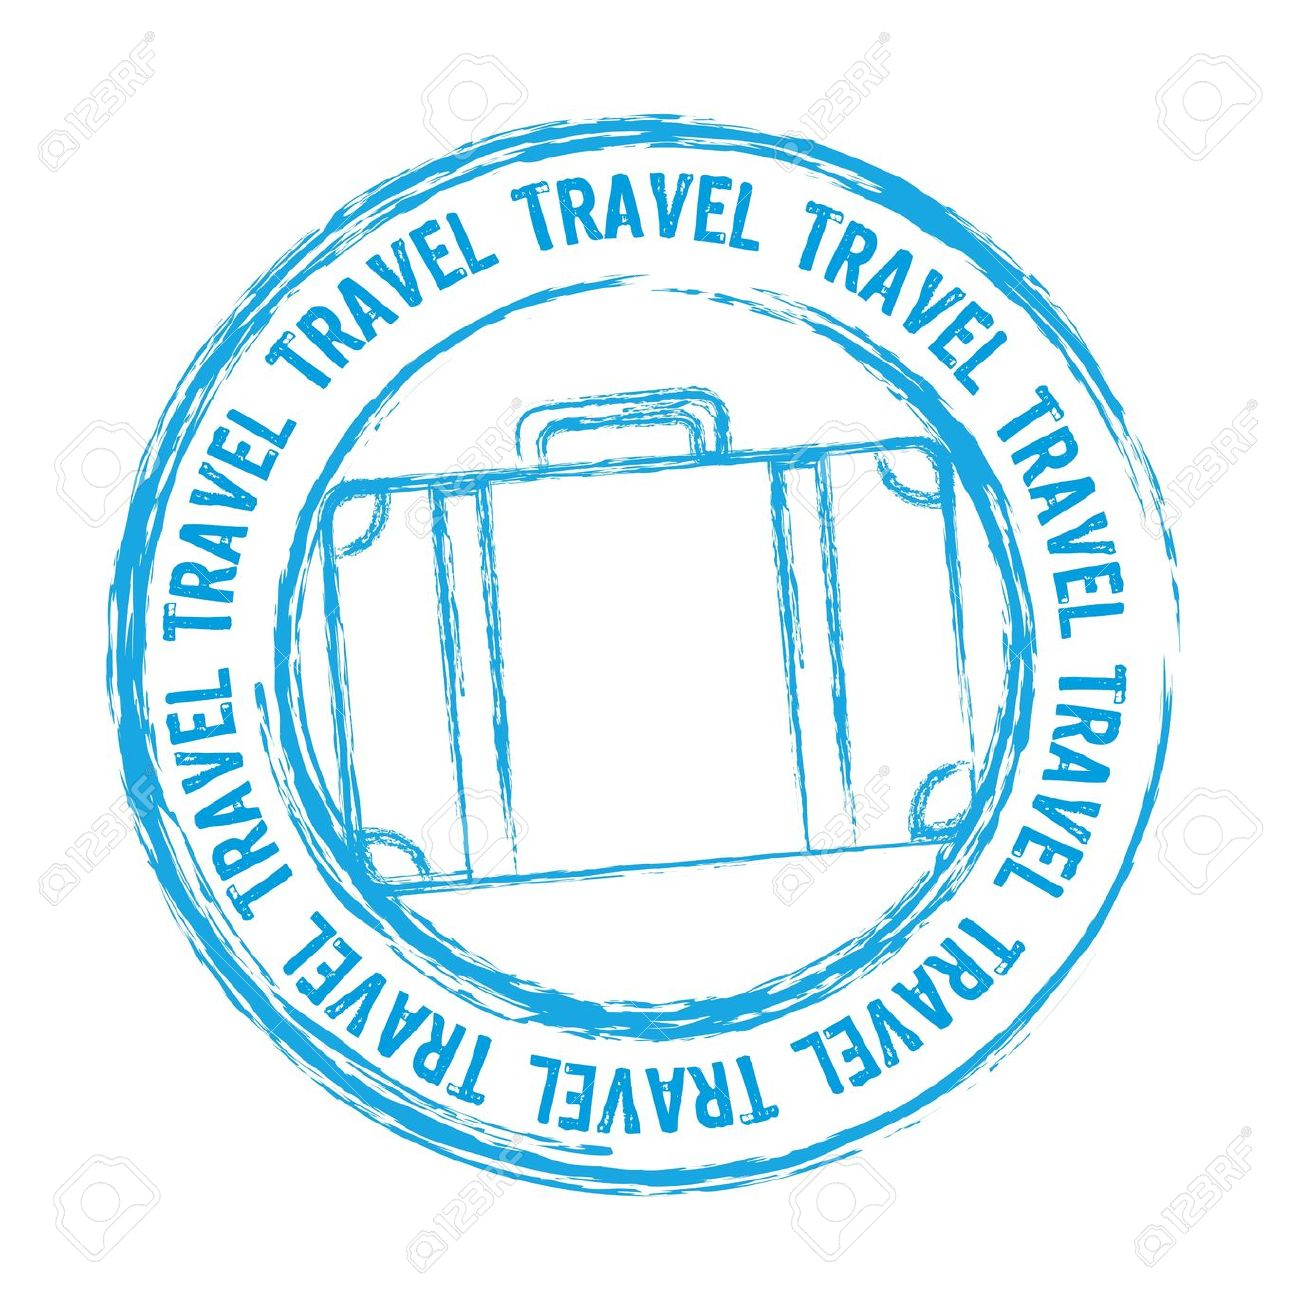 travel clip art borders clipart panda free clipart images passport stamp clip art canada passport stamps clipart black and white